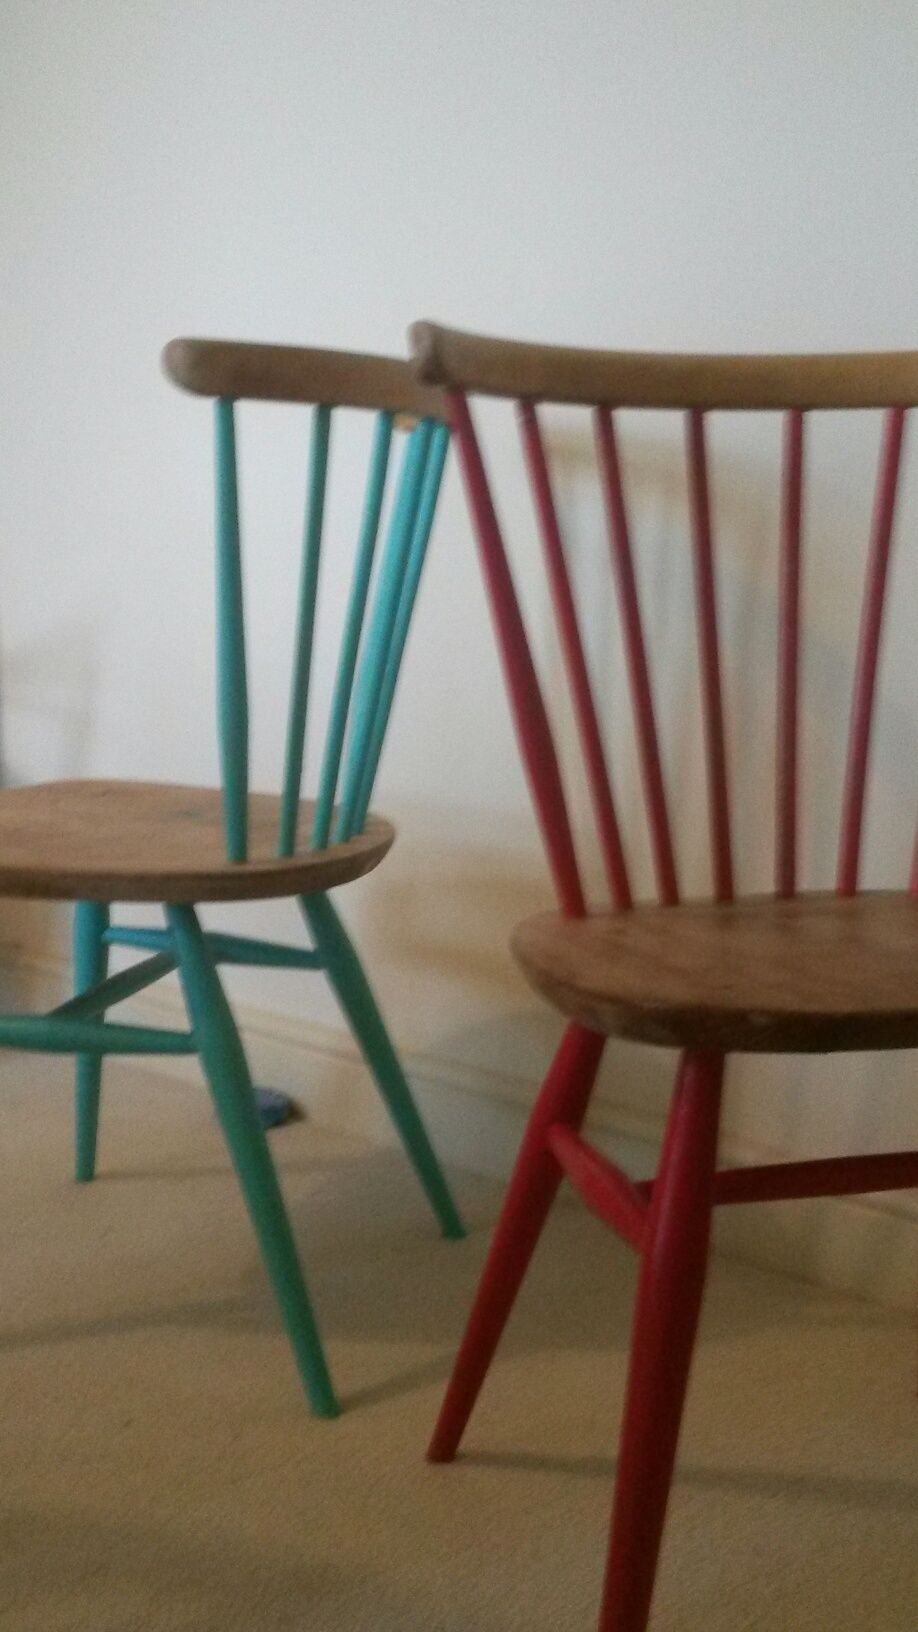 1960s Ercol Chairs Found For 163 10 Woodglued And Fixed